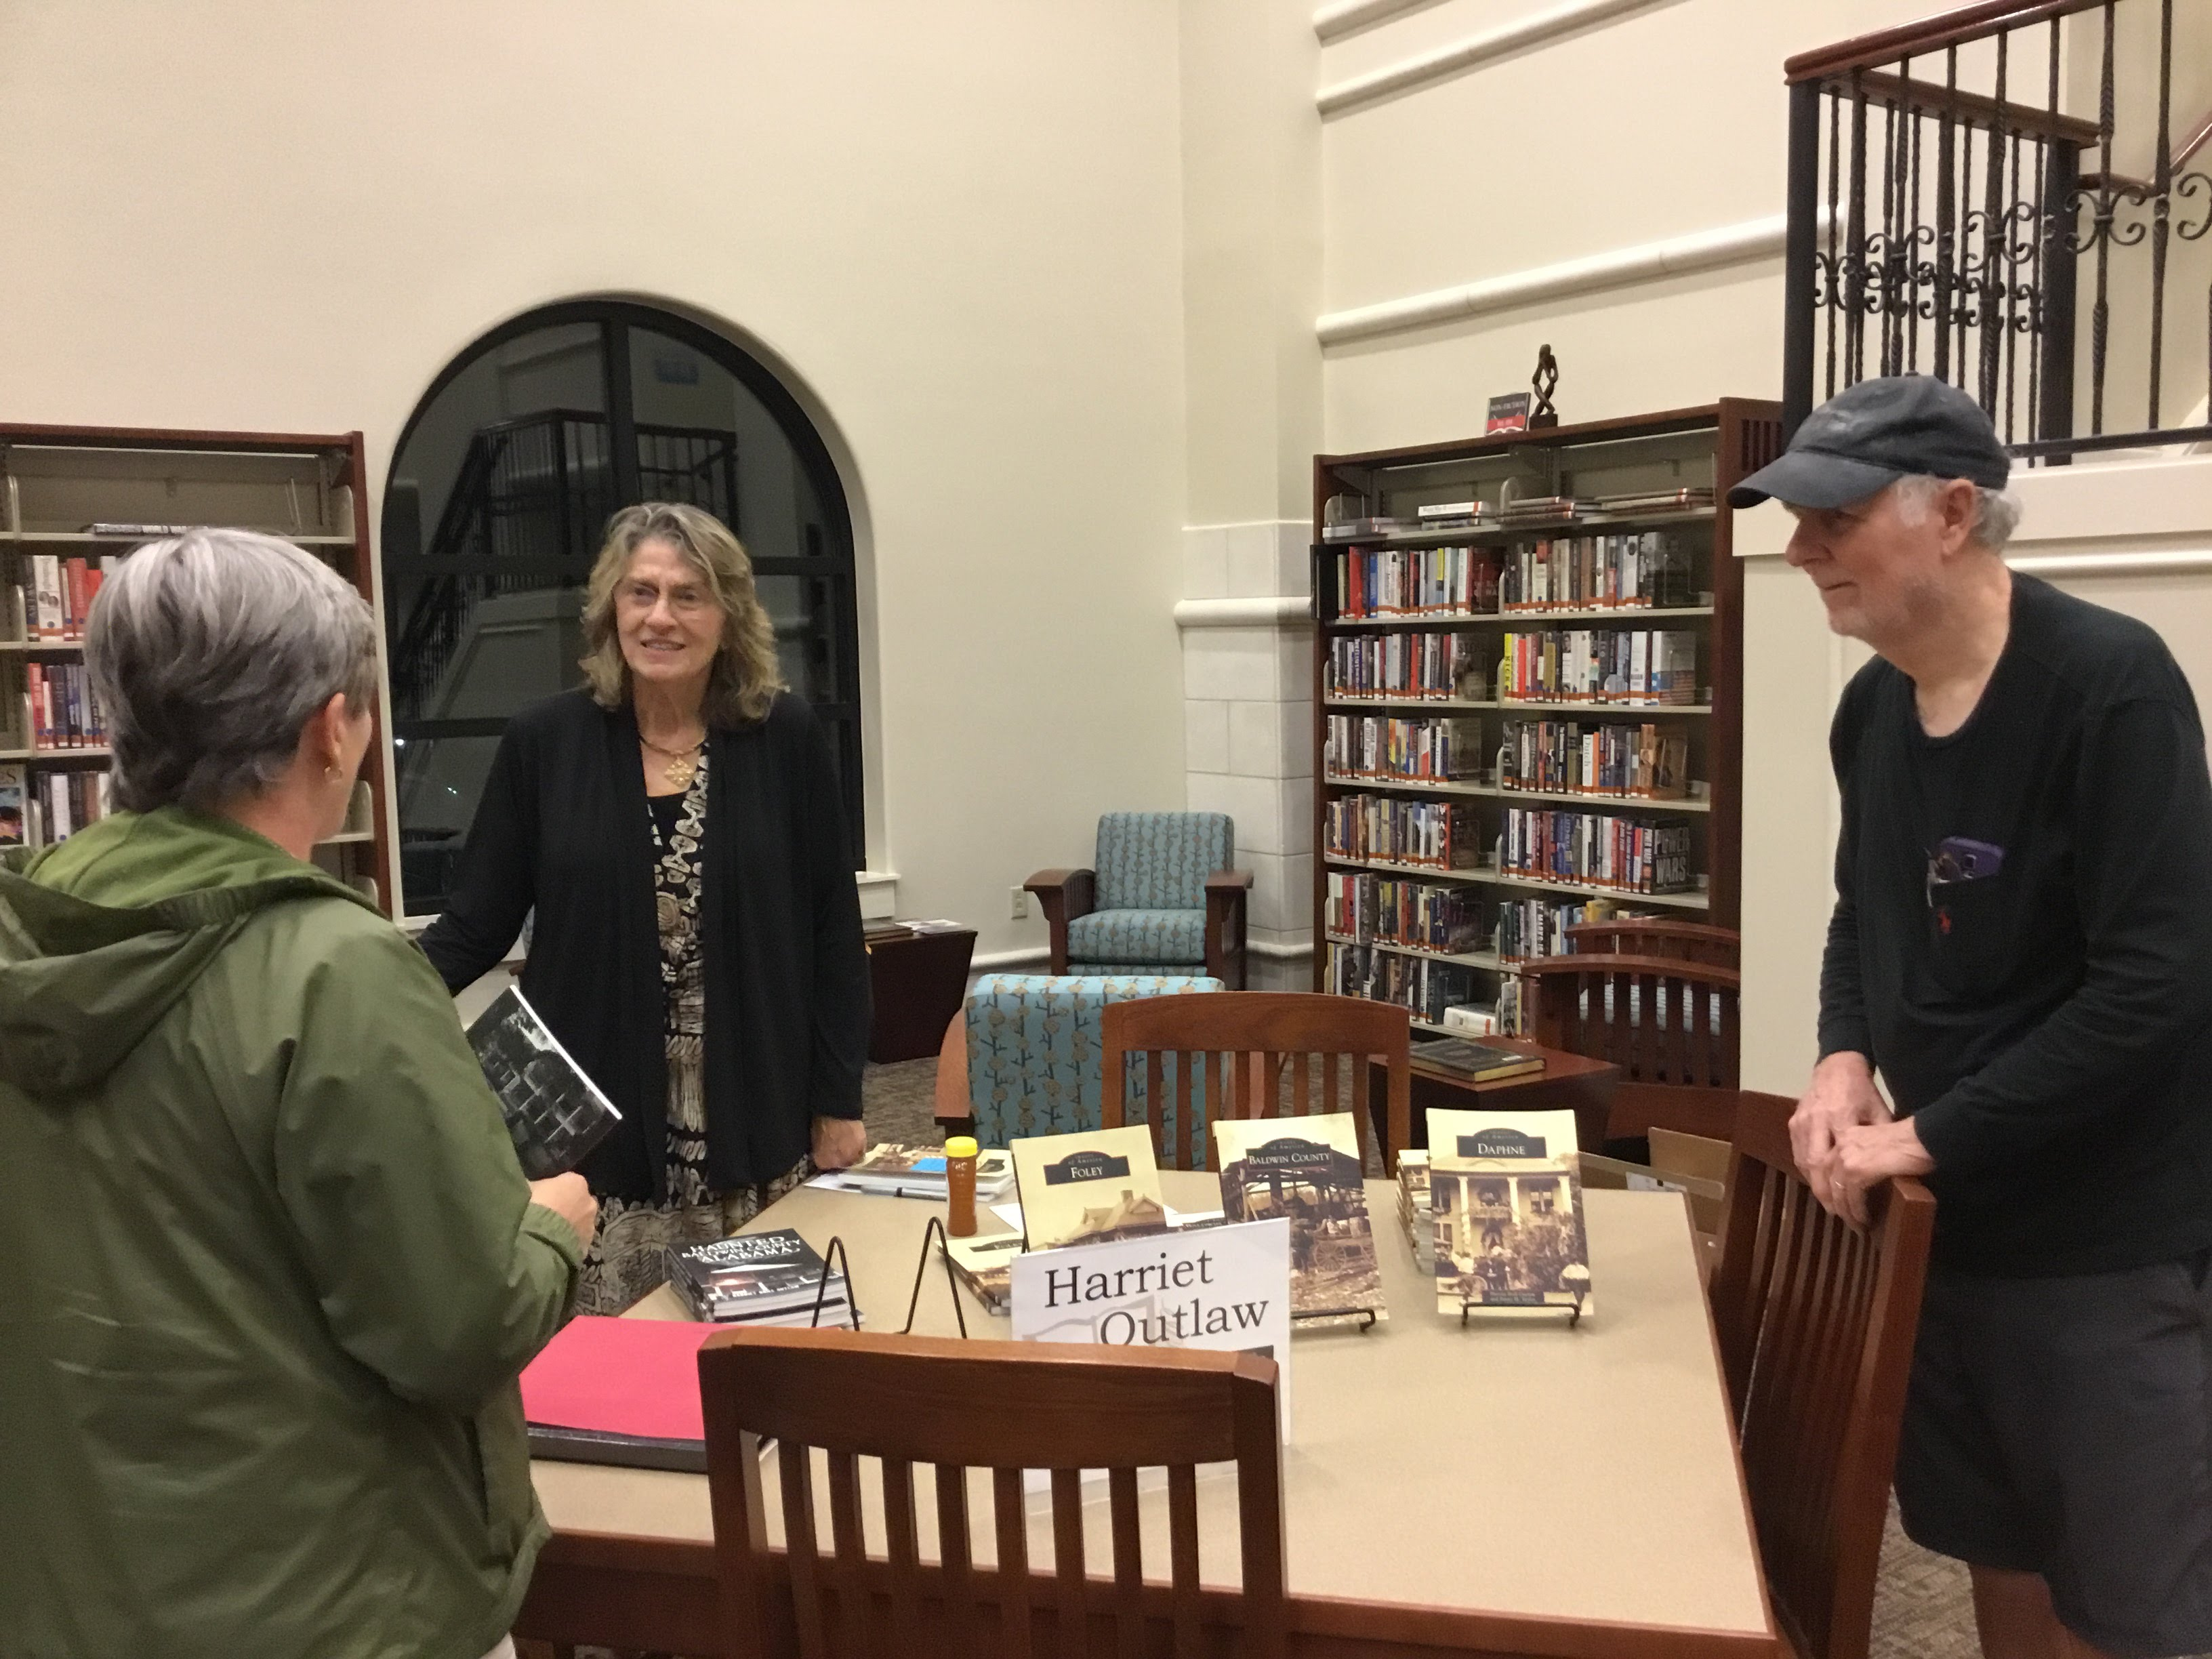 Harriet Outlaw talks with SFPL patrons at author event